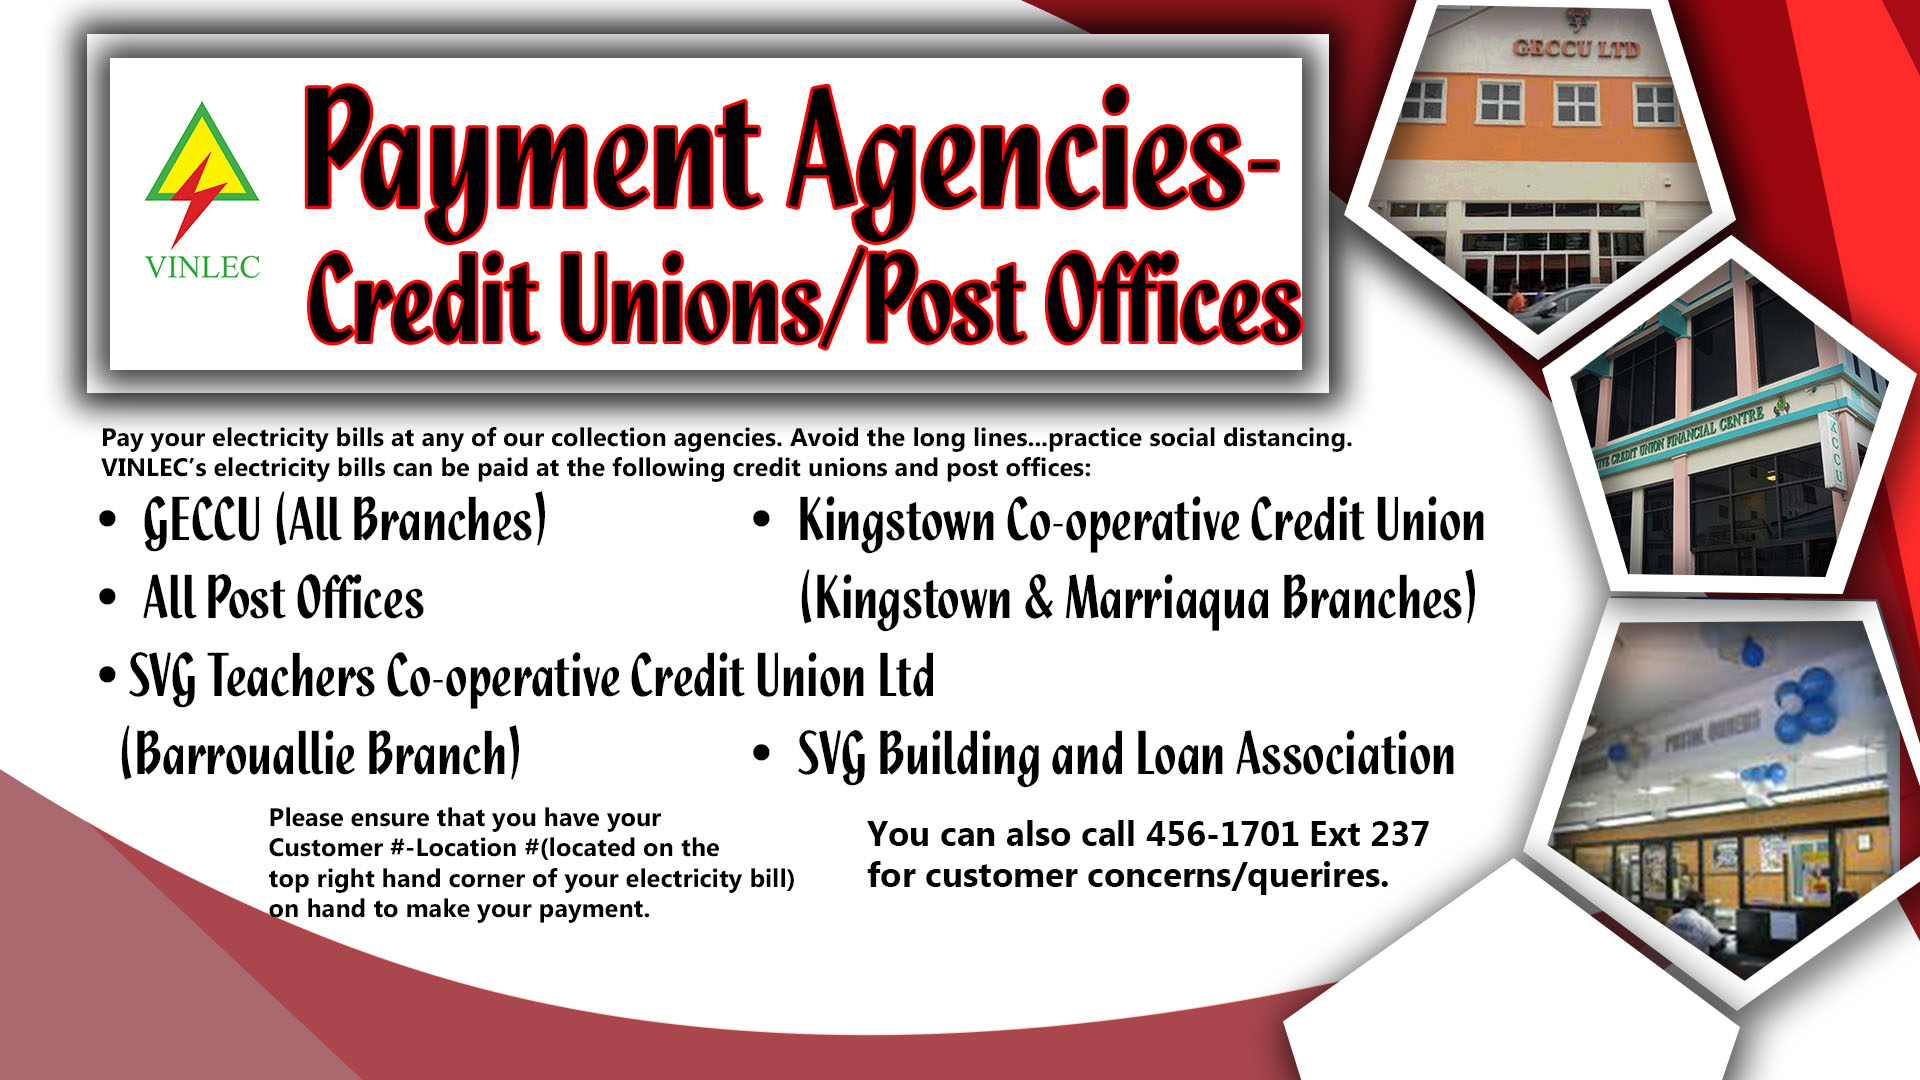 Payment Agencies Credit Unions/Post Offices